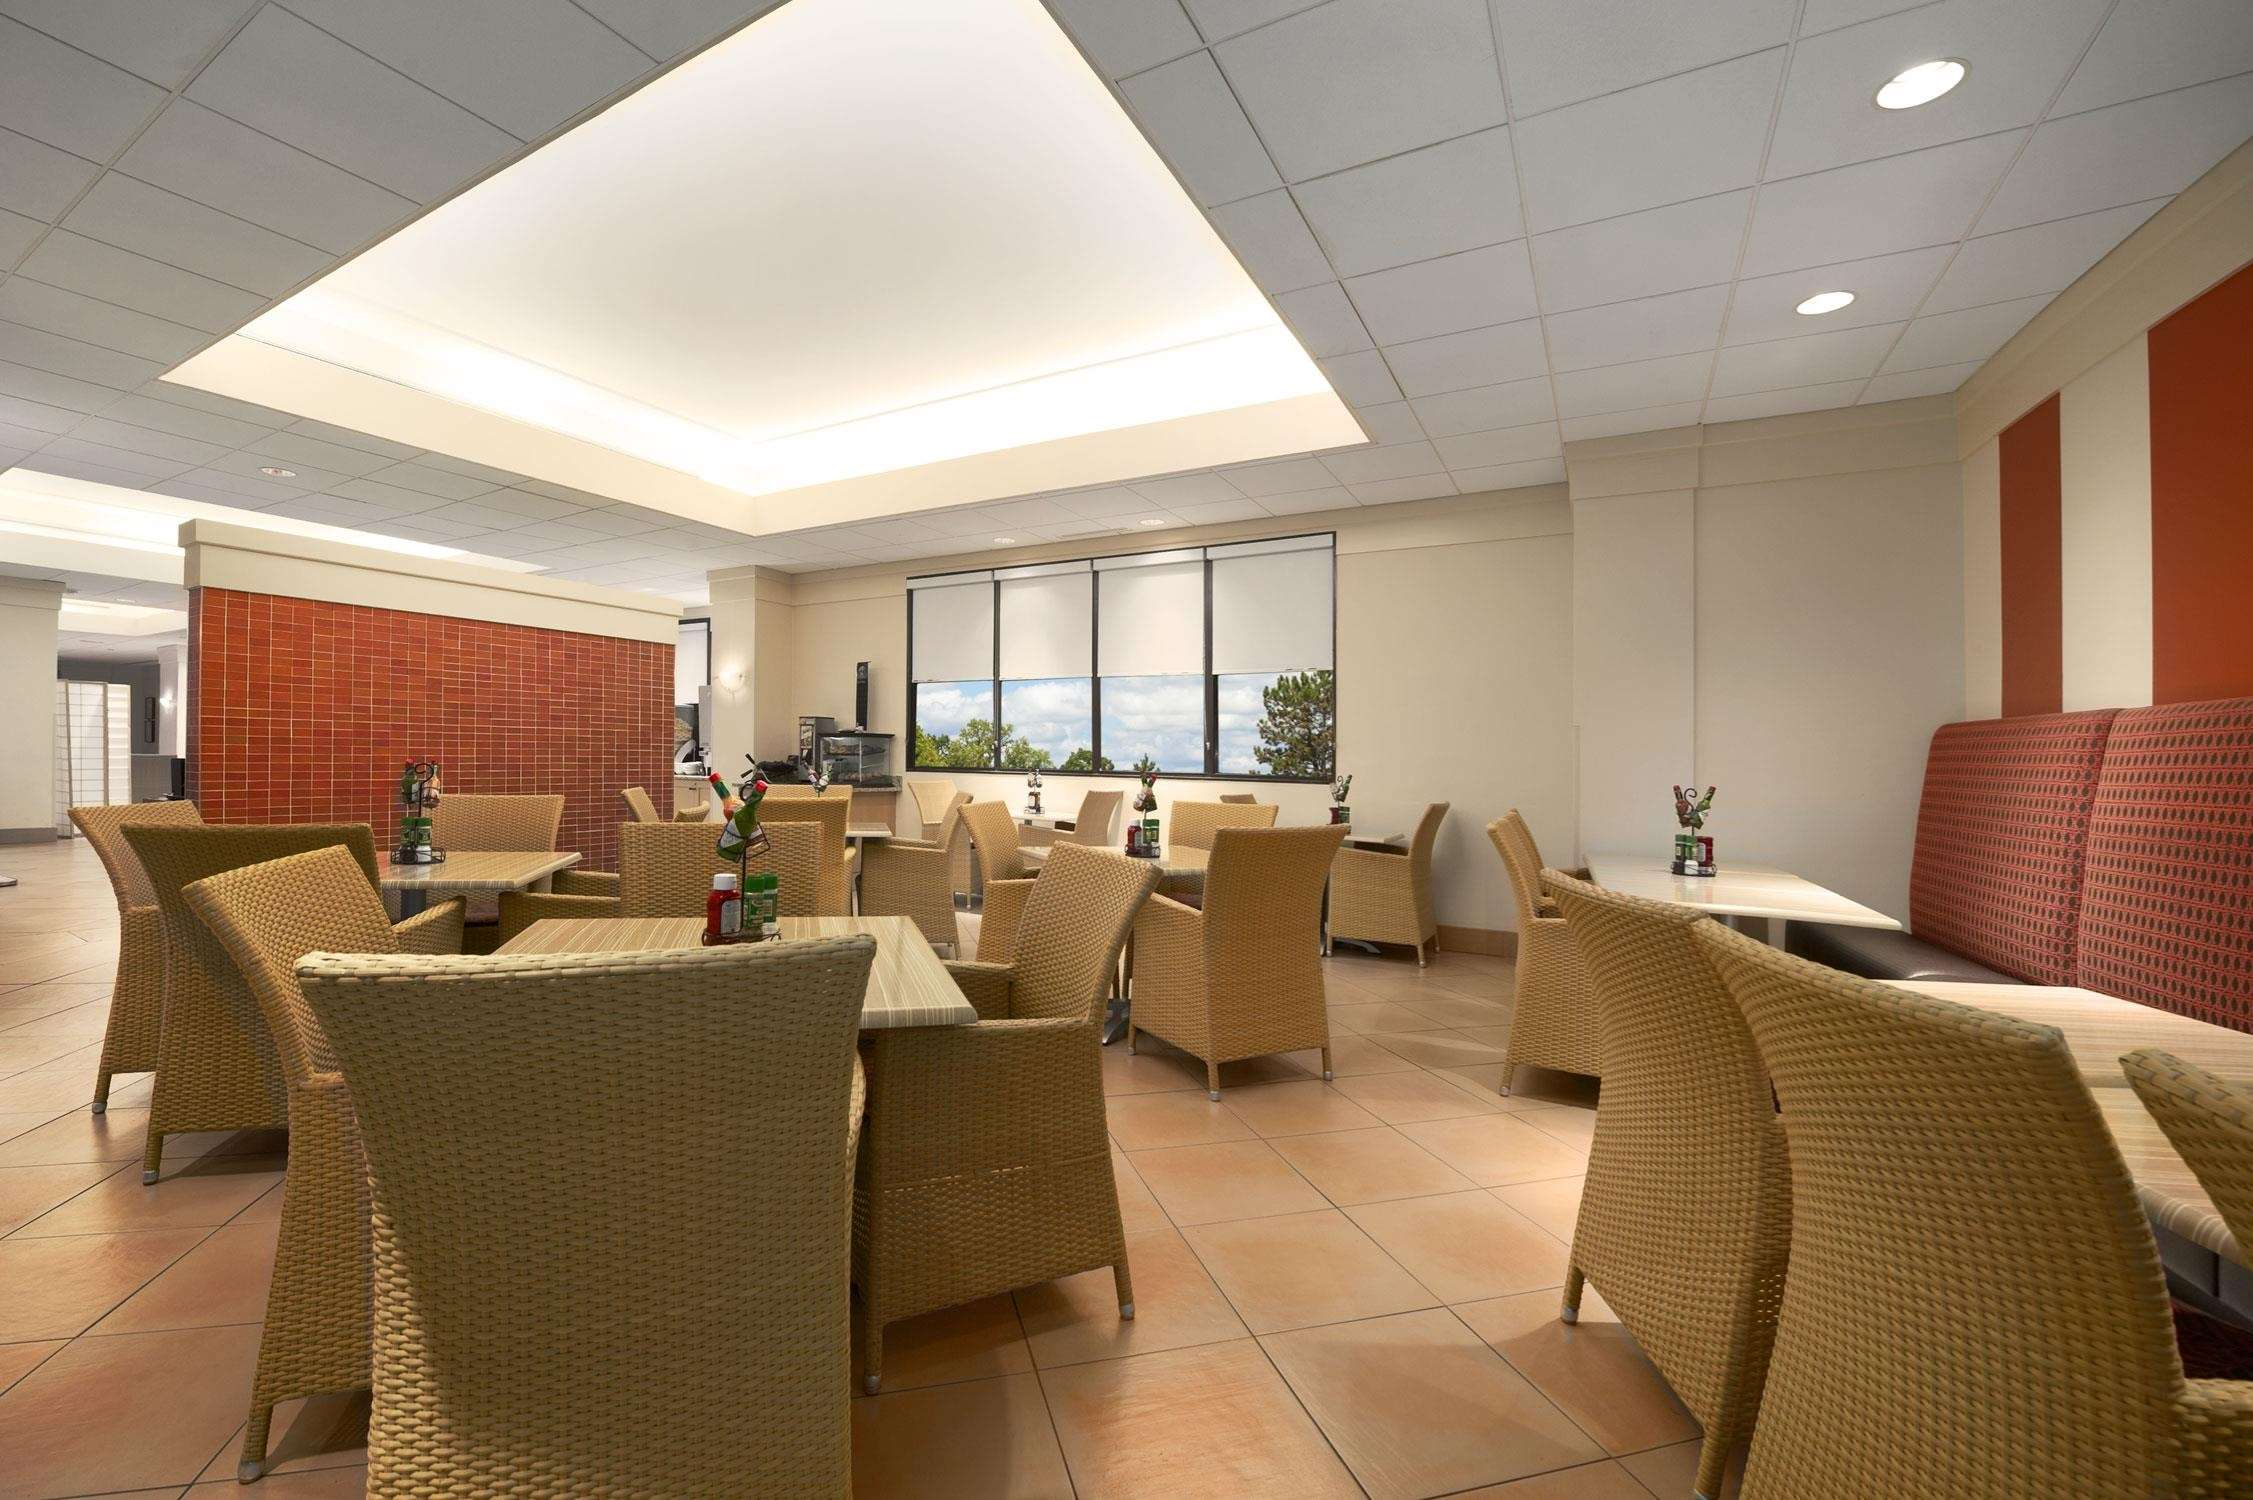 Embassy Suites by Hilton Tampa Airport Westshore image 13